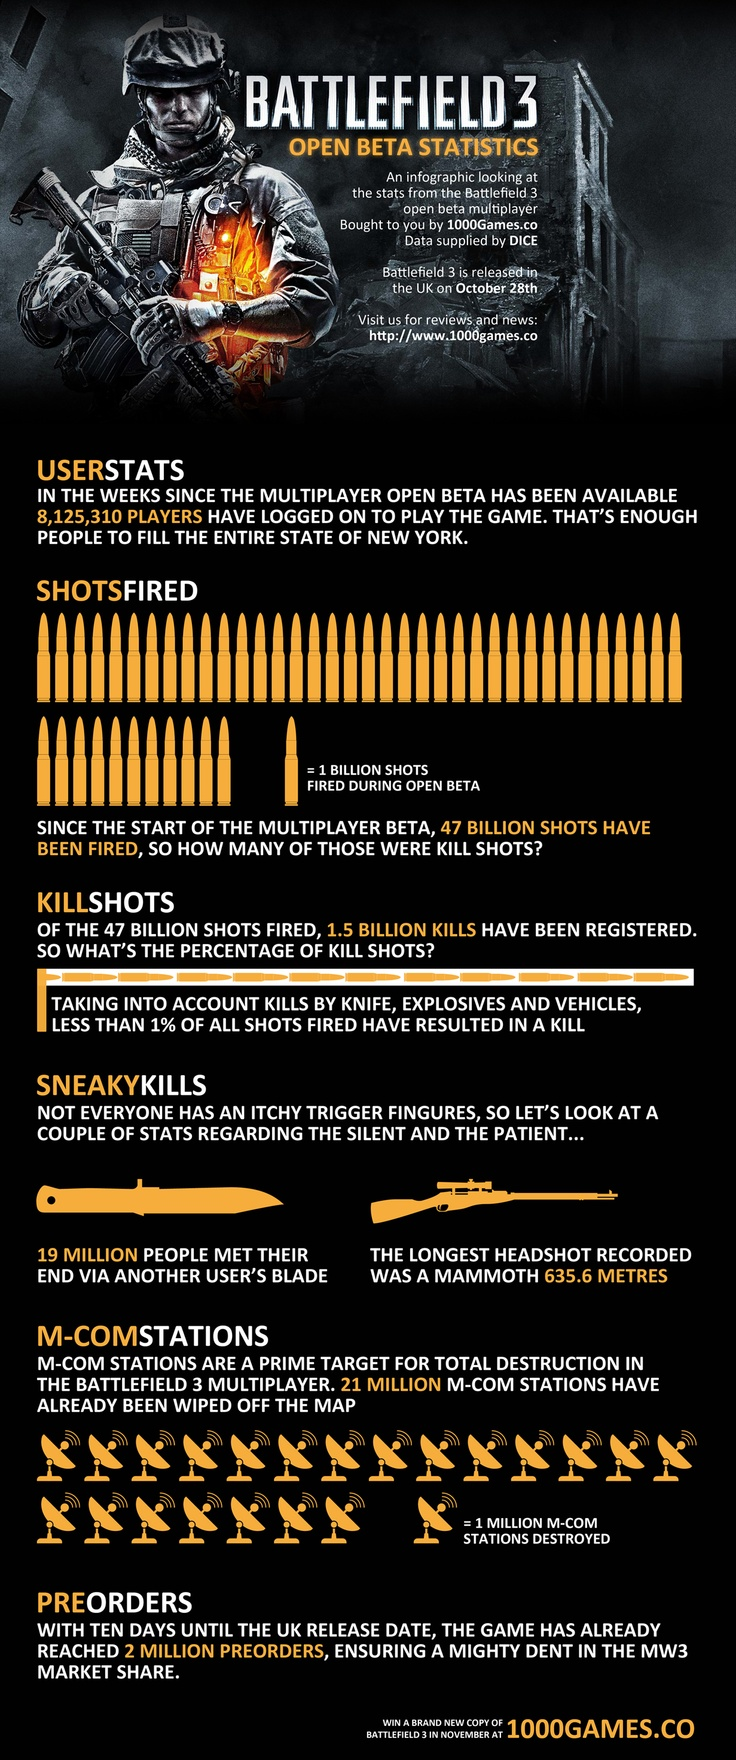 A look at the statistics from the open beta multiplayer of Battlefield 3.